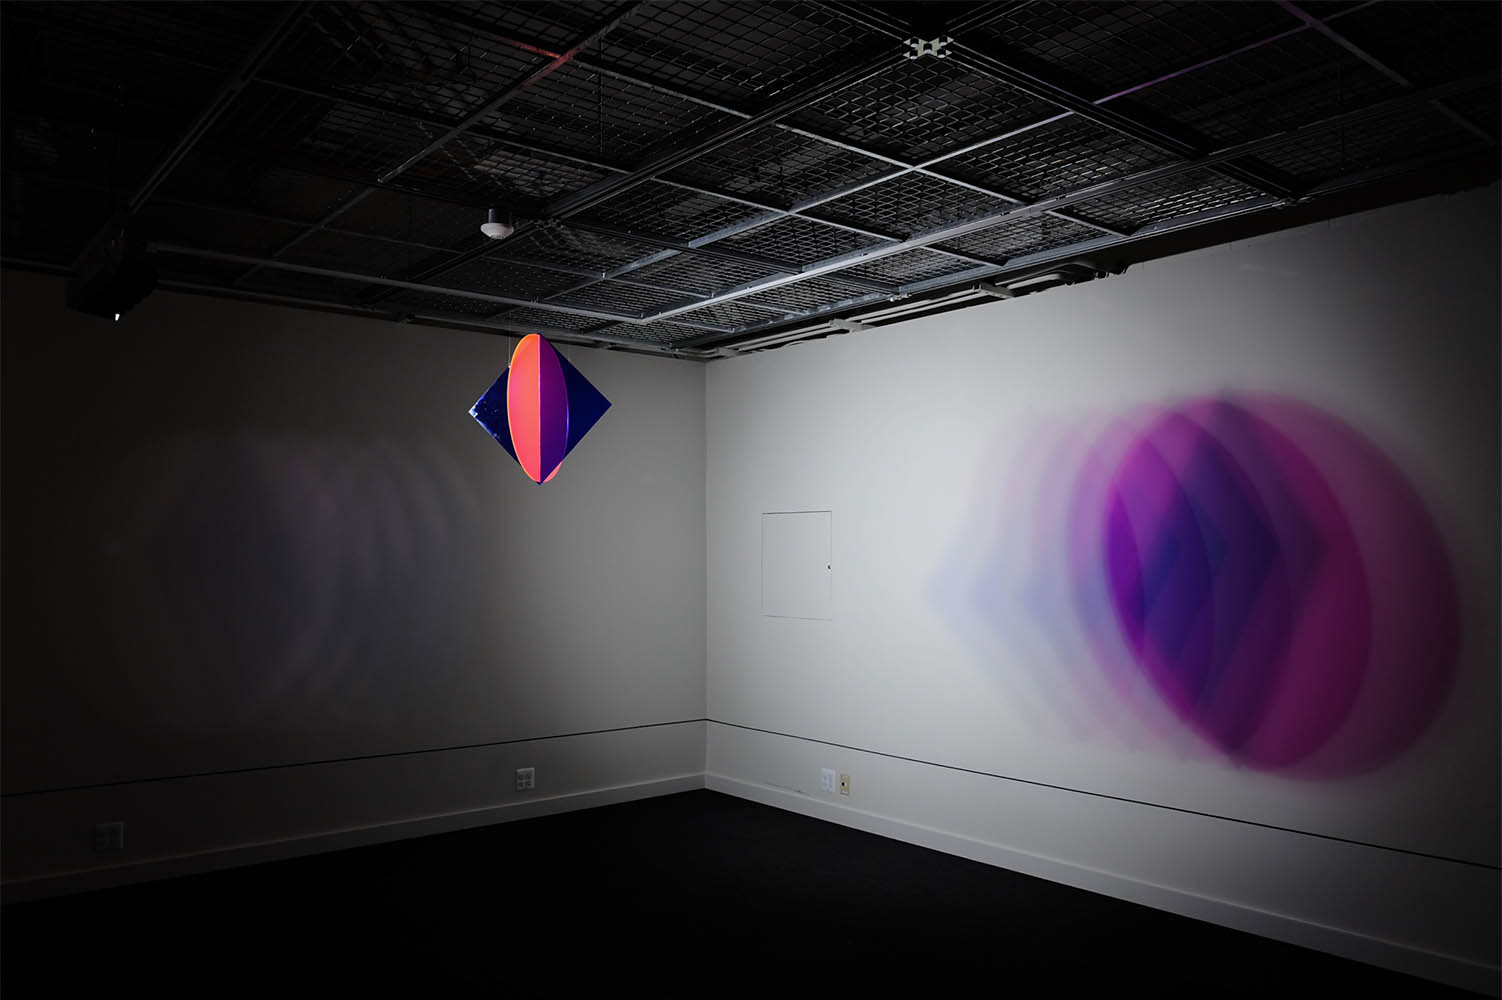 Circular suspended sculpture, reflecting purple light onto wall